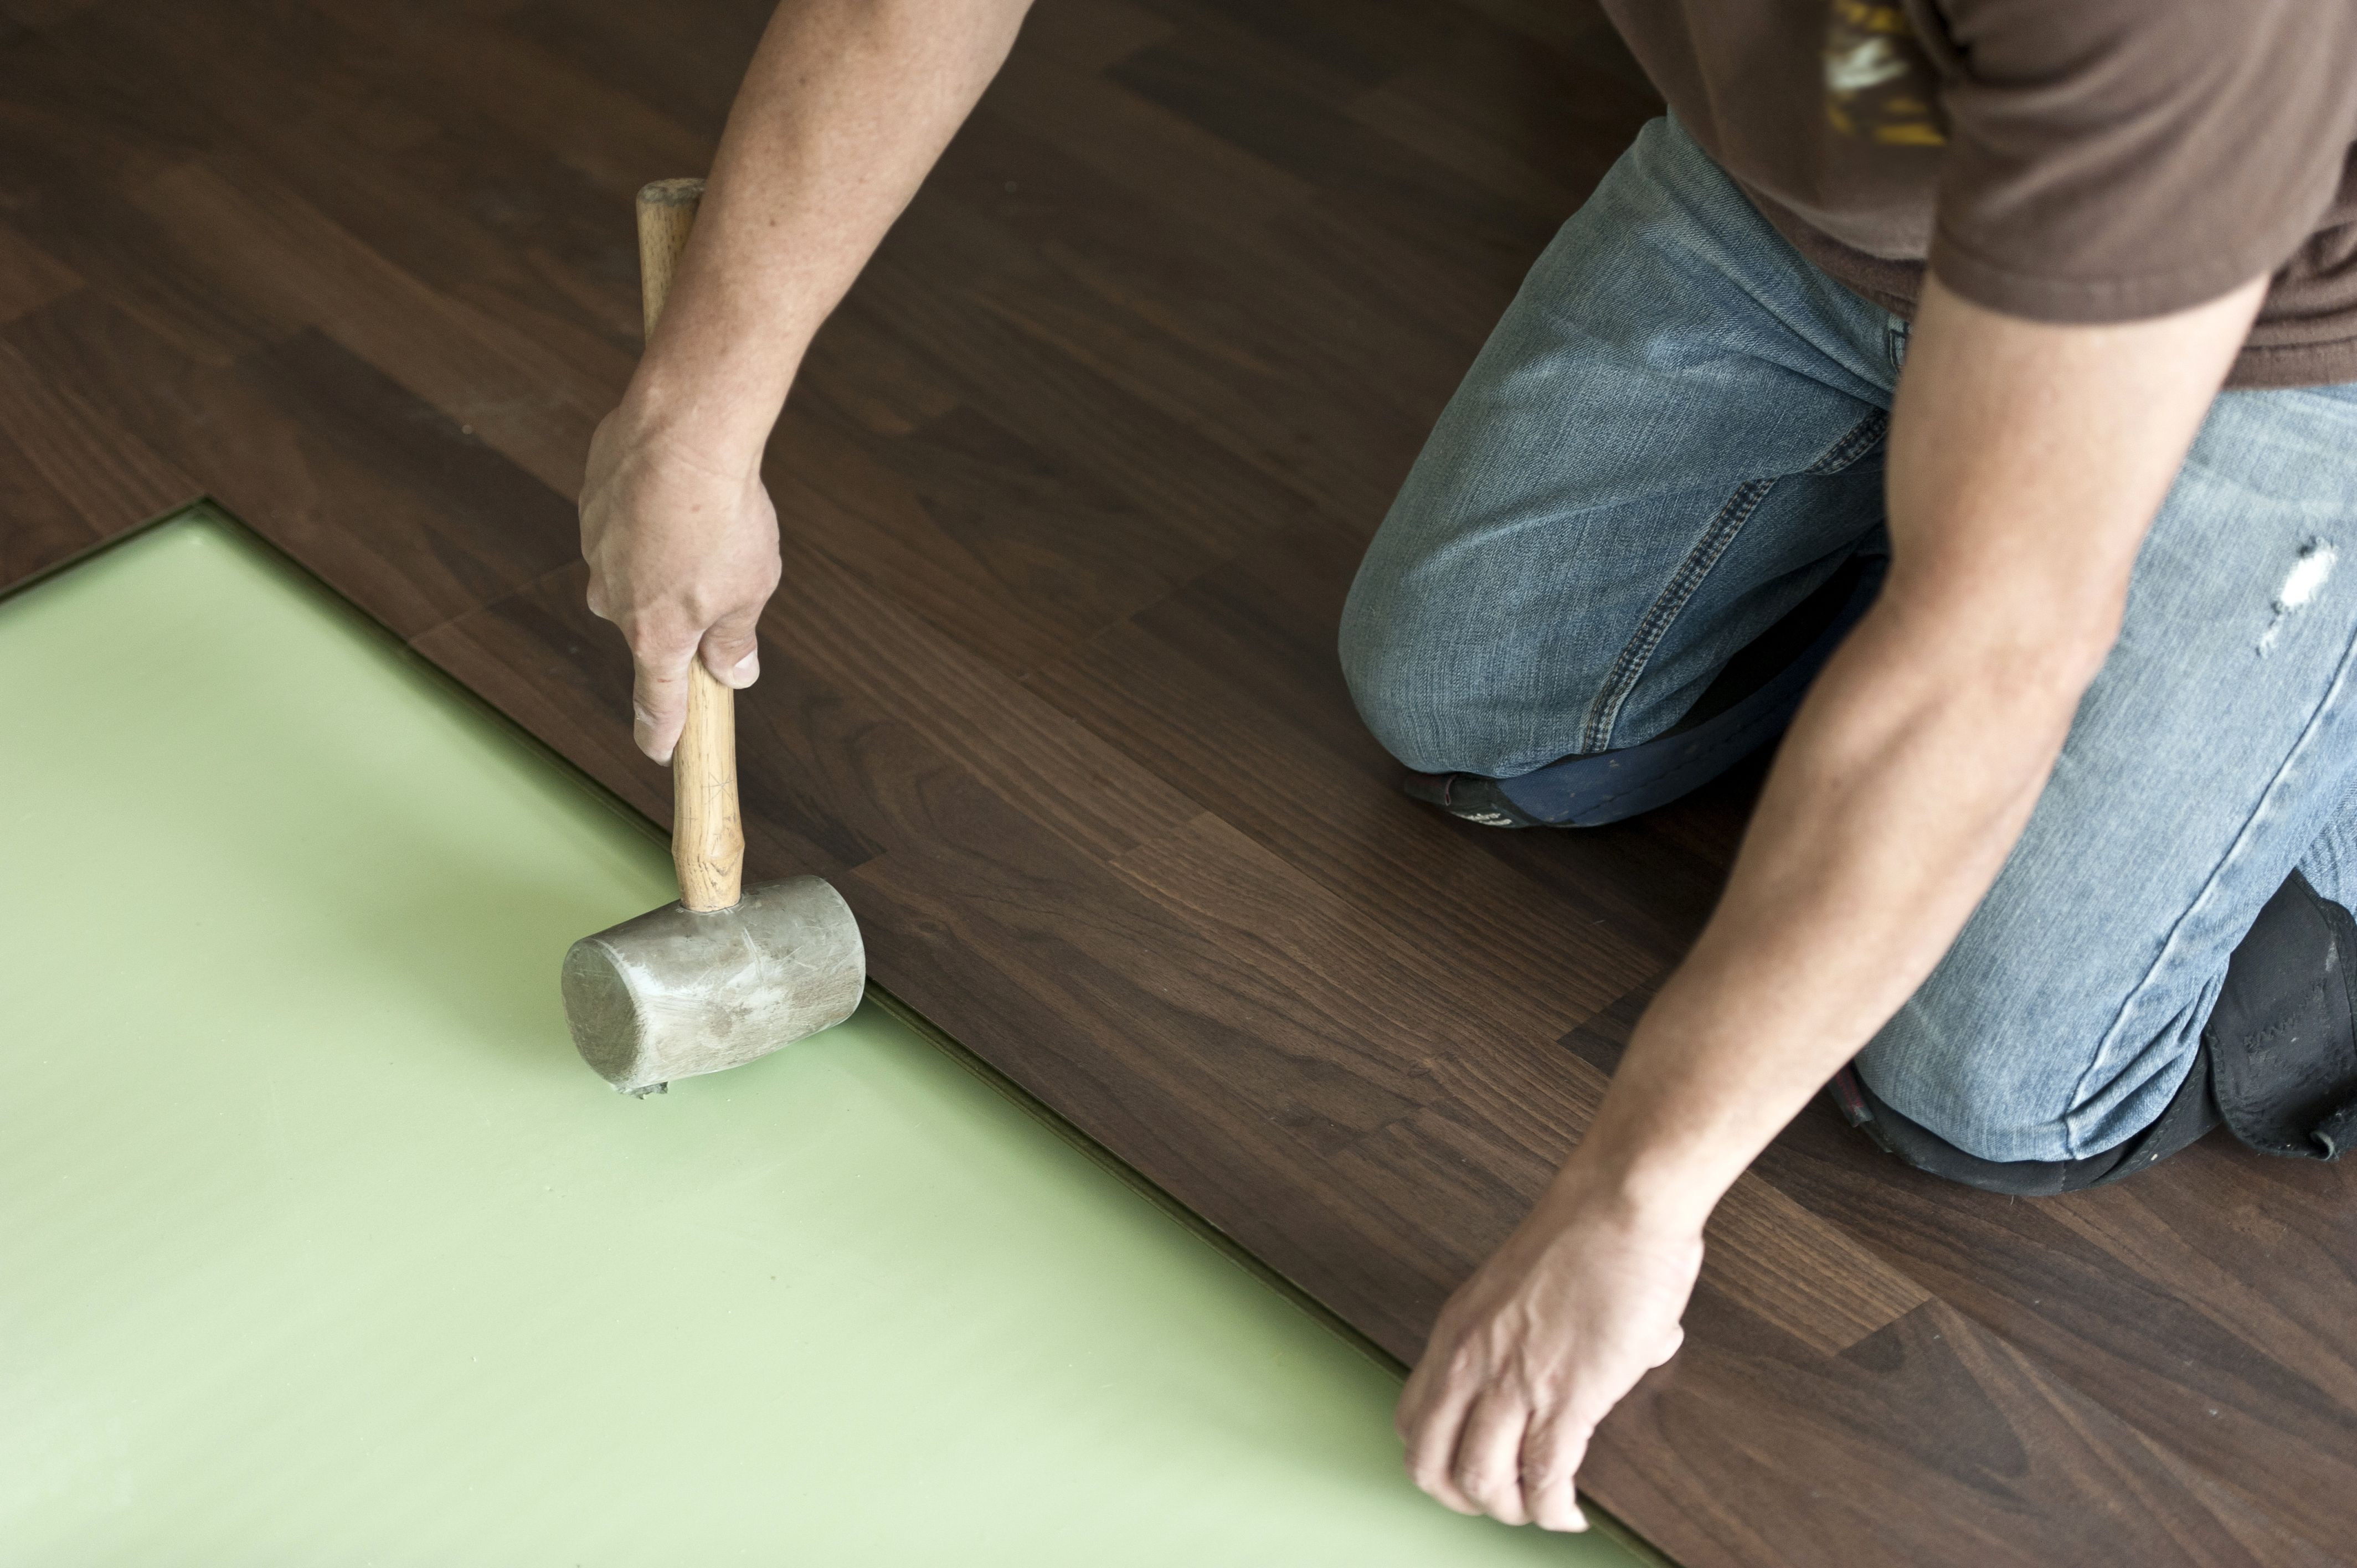 price to install engineered hardwood flooring of can a foam pad be use under solid hardwood flooring for installing hardwood floor 155149312 57e967d45f9b586c35ade84a